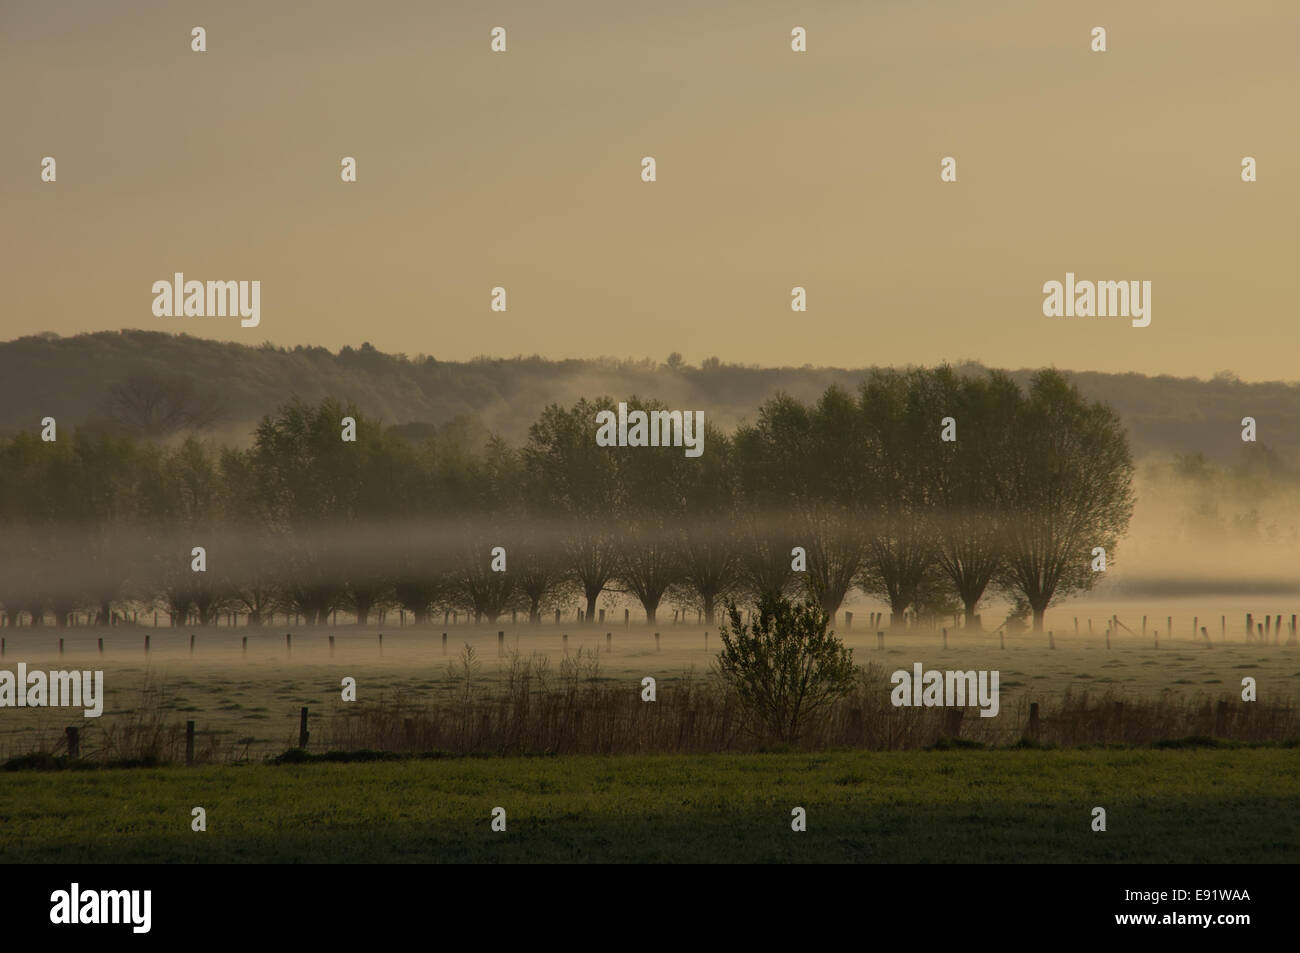 Morning spirit with waft of mist - Stock Image